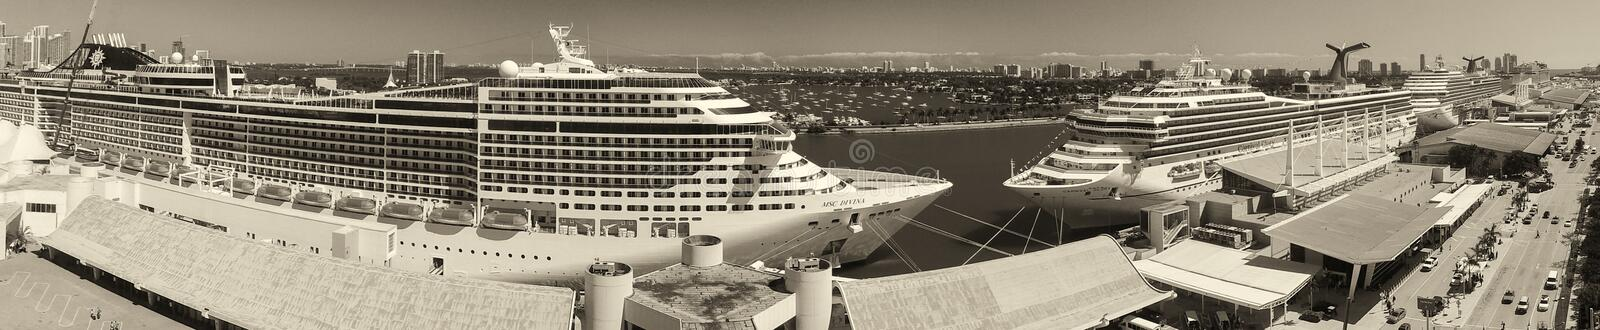 MIAMI - FEBRUARY 27, 2016: Aerial view of port with cruise ships stock images